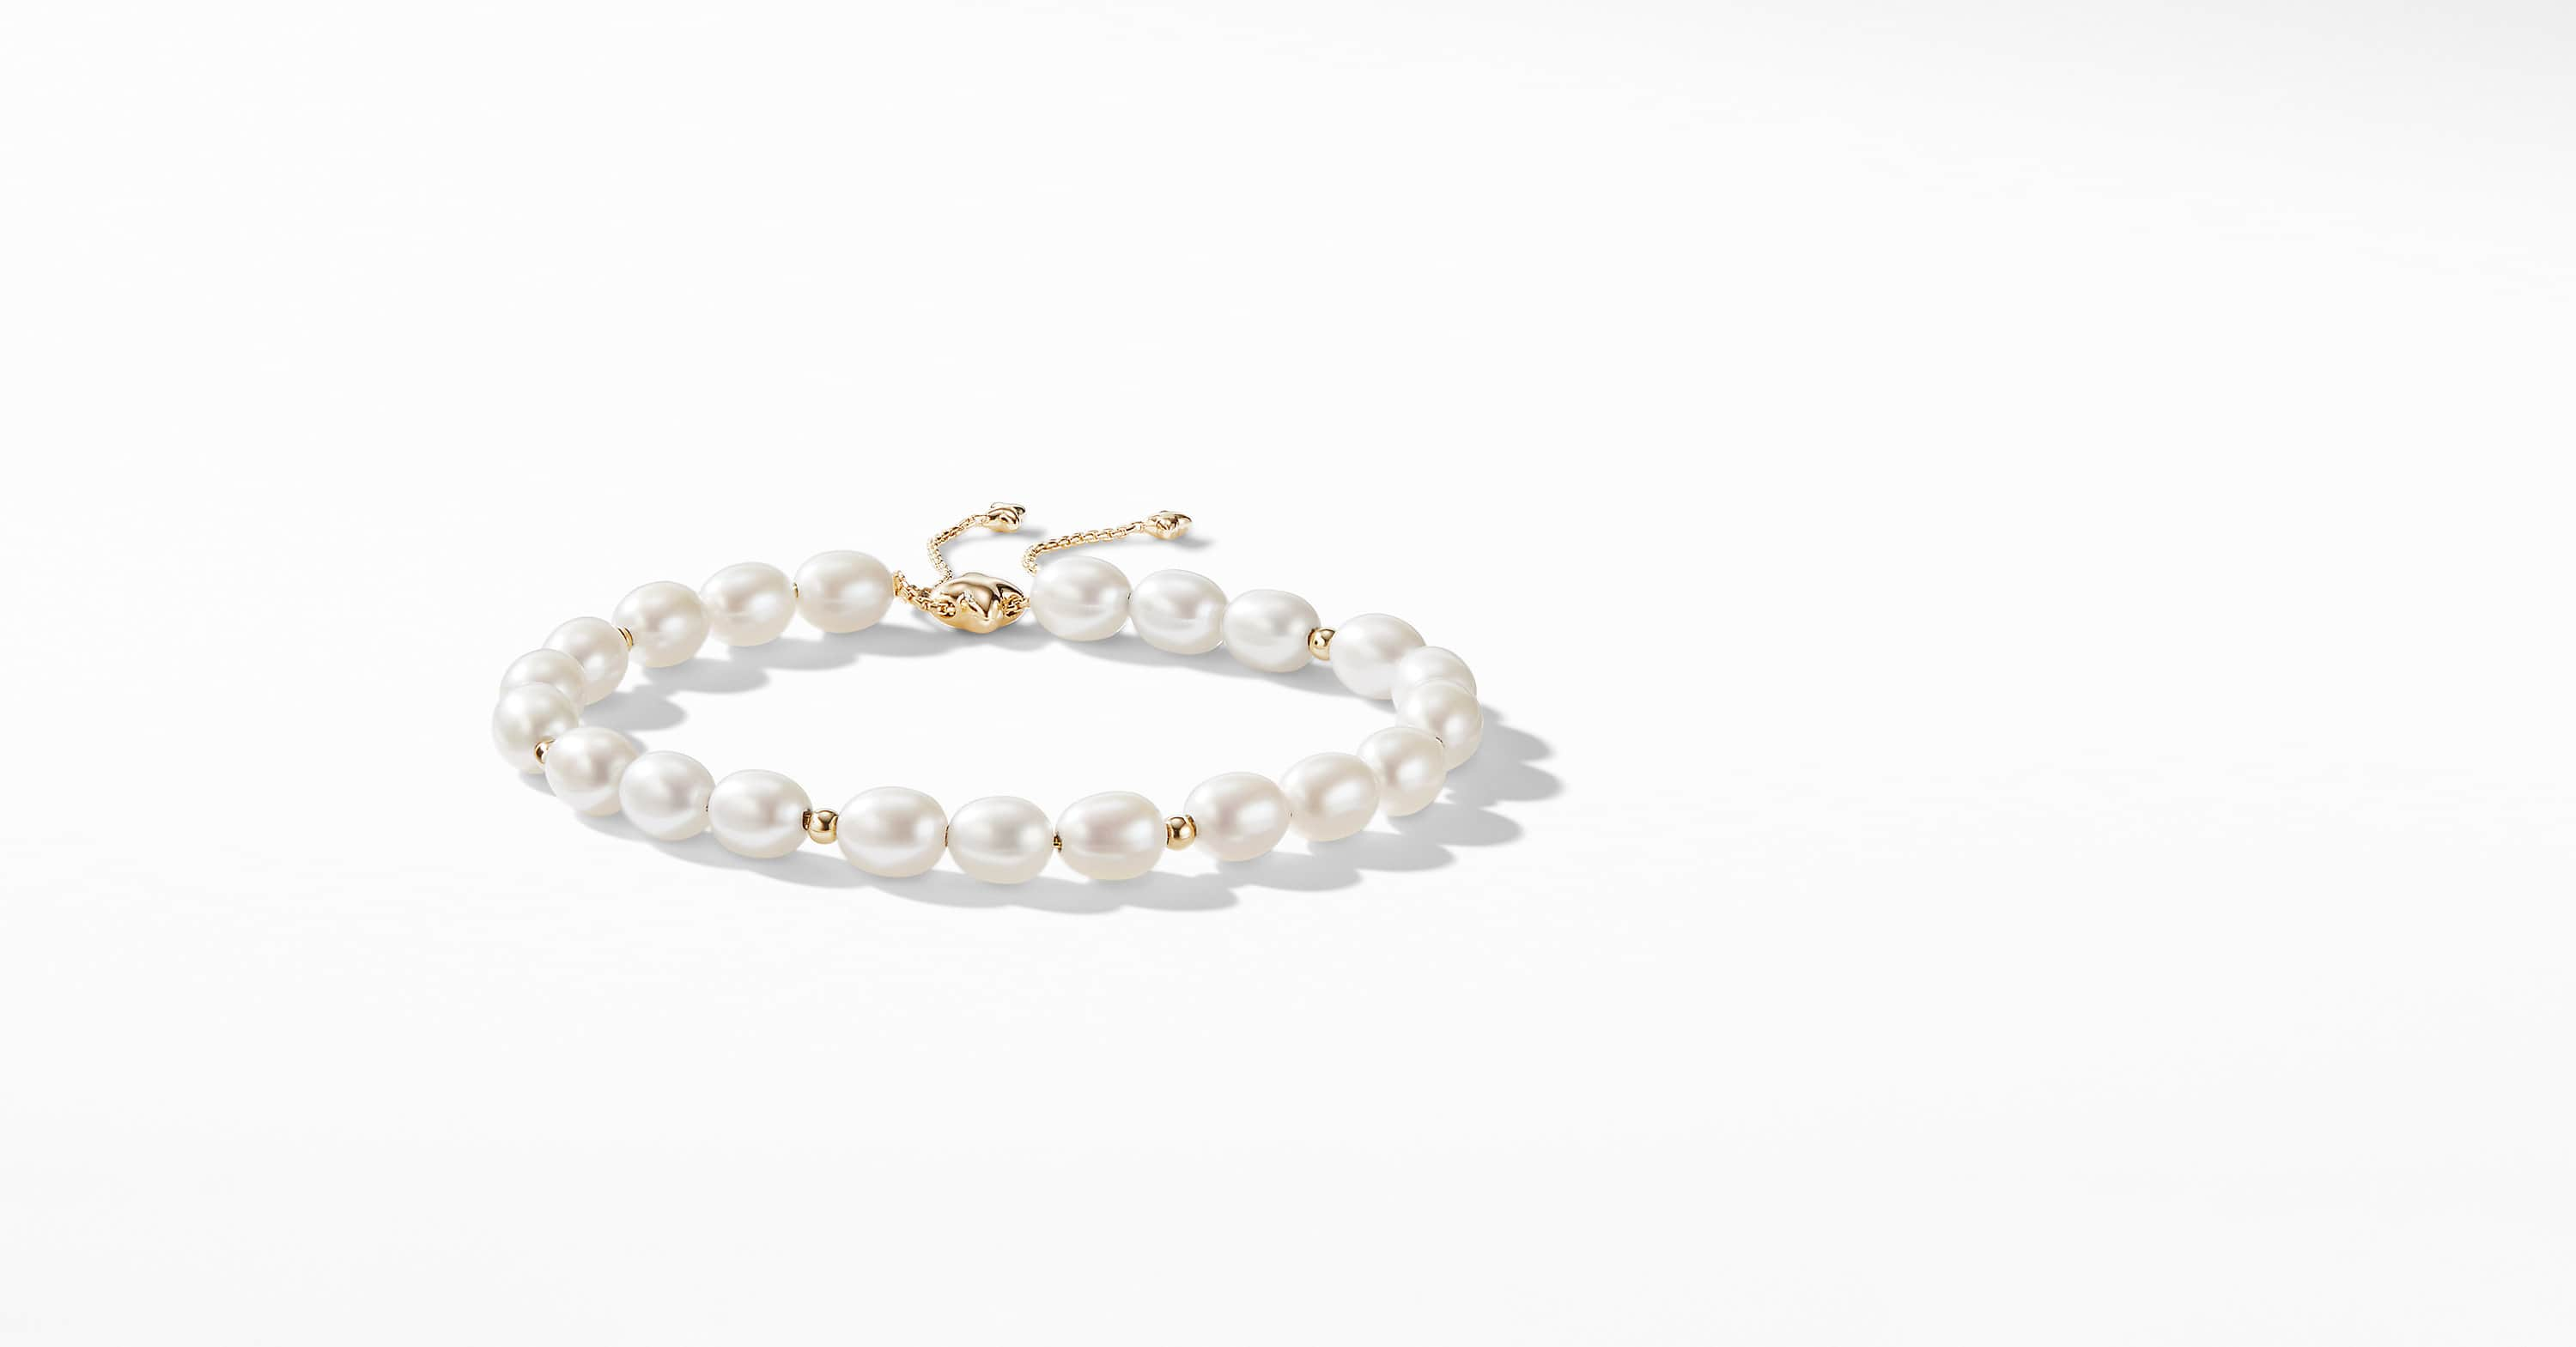 Spiritual Bead Bracelet with 18K Gold